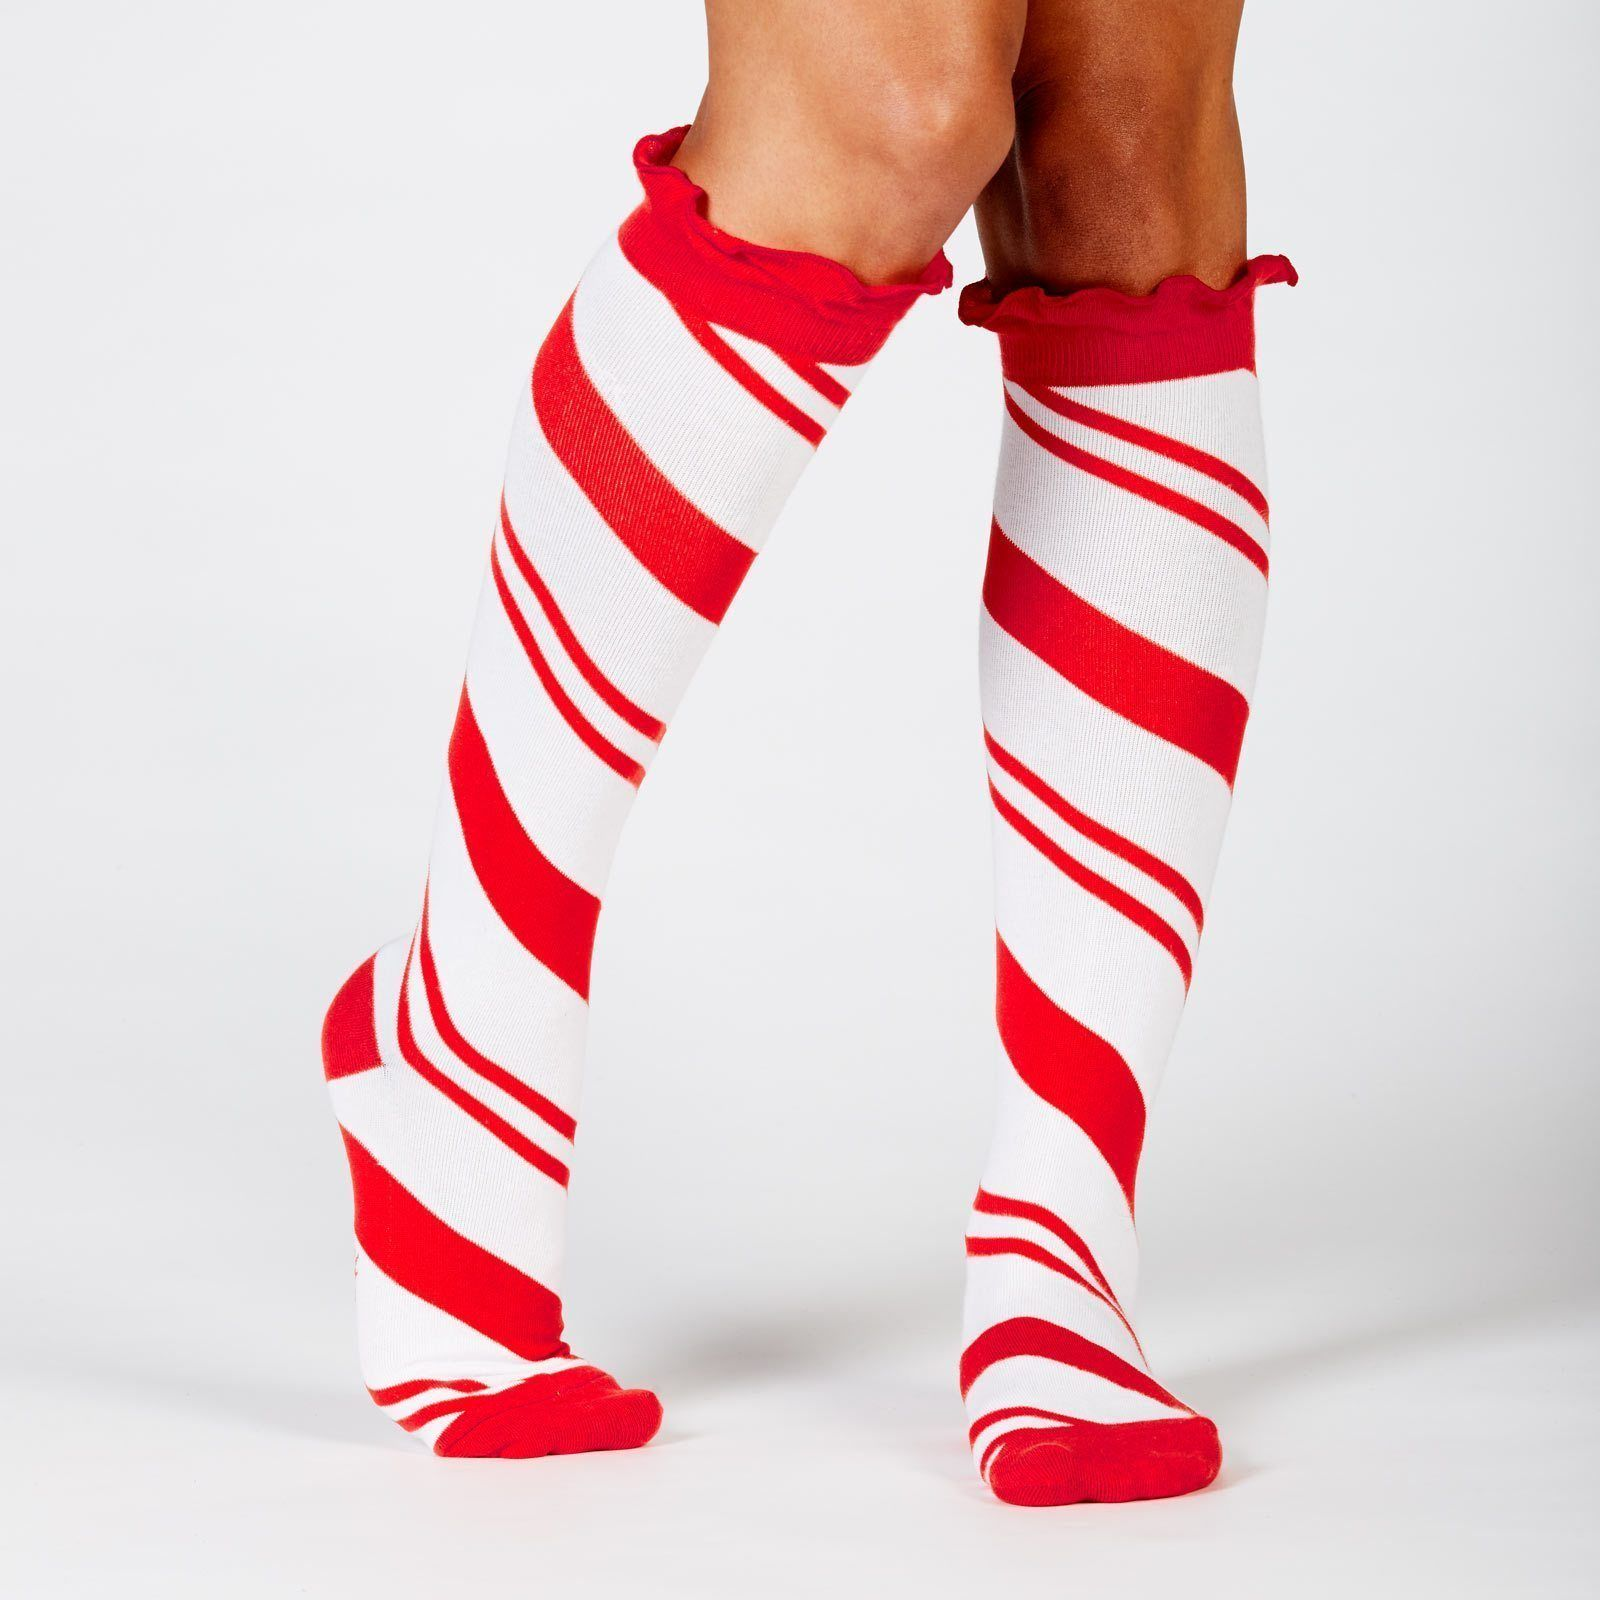 Sock It To Me - Candy Cane Knee High Socks | Women's - Knock Your Socks Off